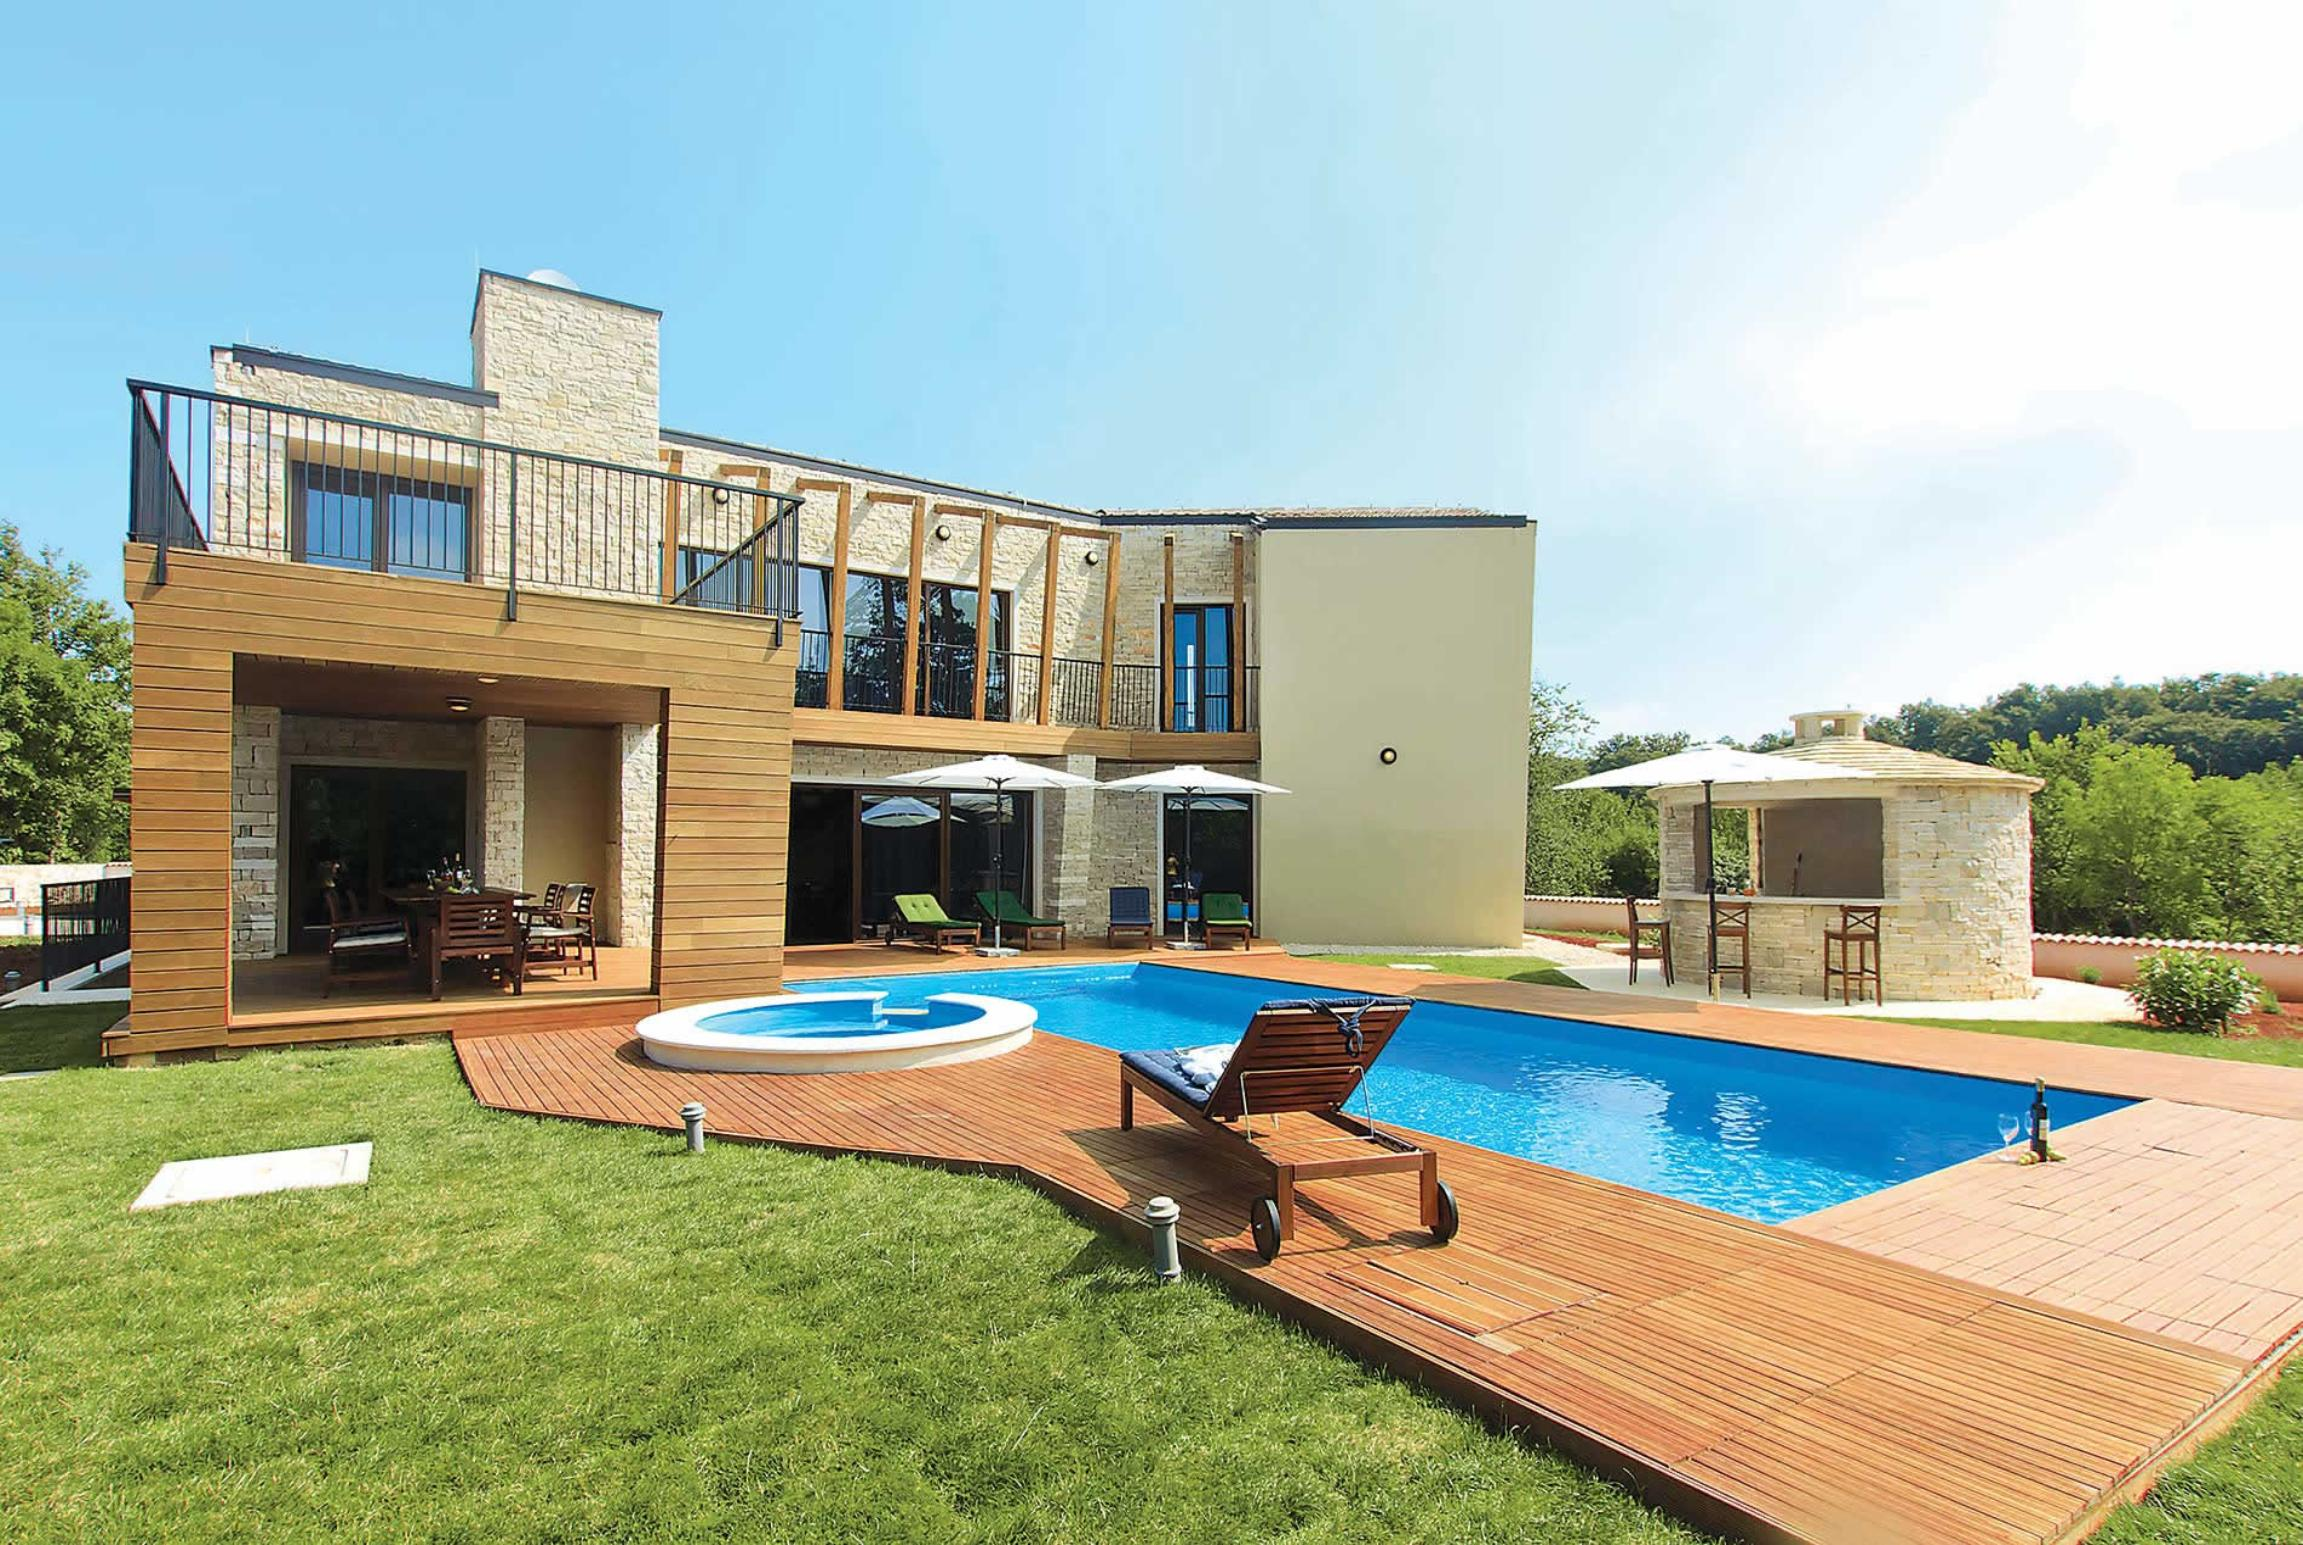 Read more about Odmor villa